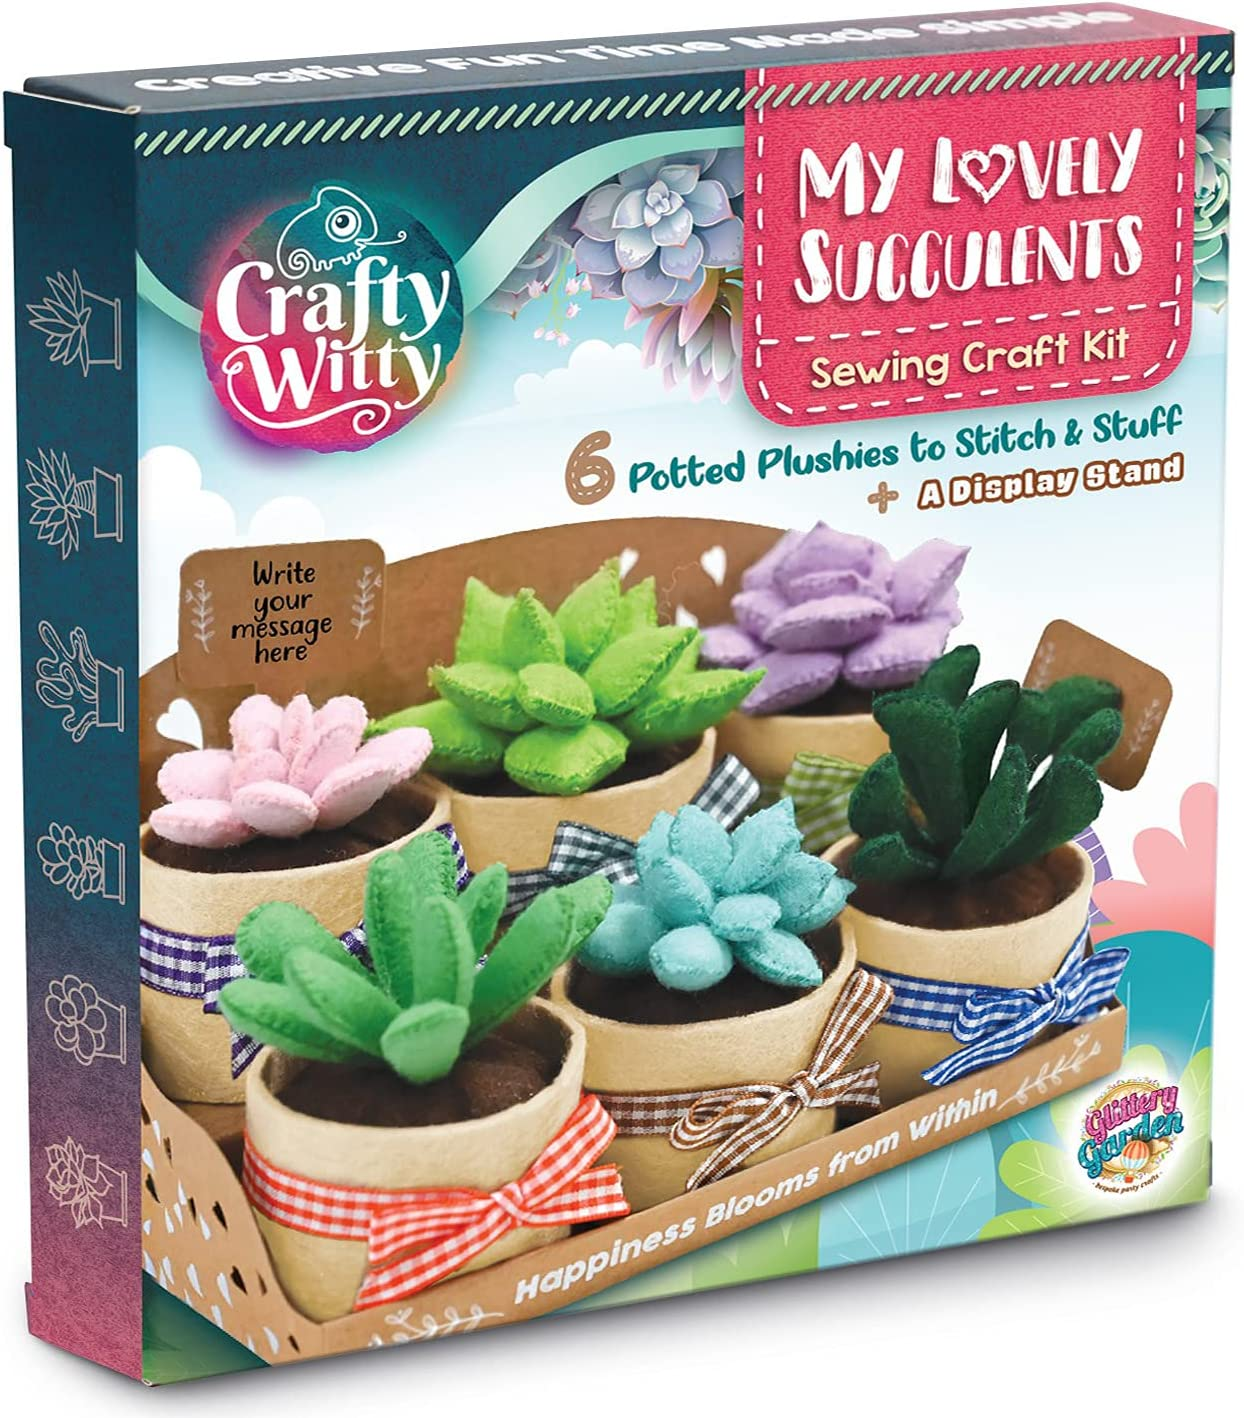 Felt Succulents Craft Kit. Make 6 Potted Colorful Plushies & A Display Rack. Mini Garden DIY Sewing Project, Activity Set, Arts & Crafts Supplies - Great Gift for Teens and Adults